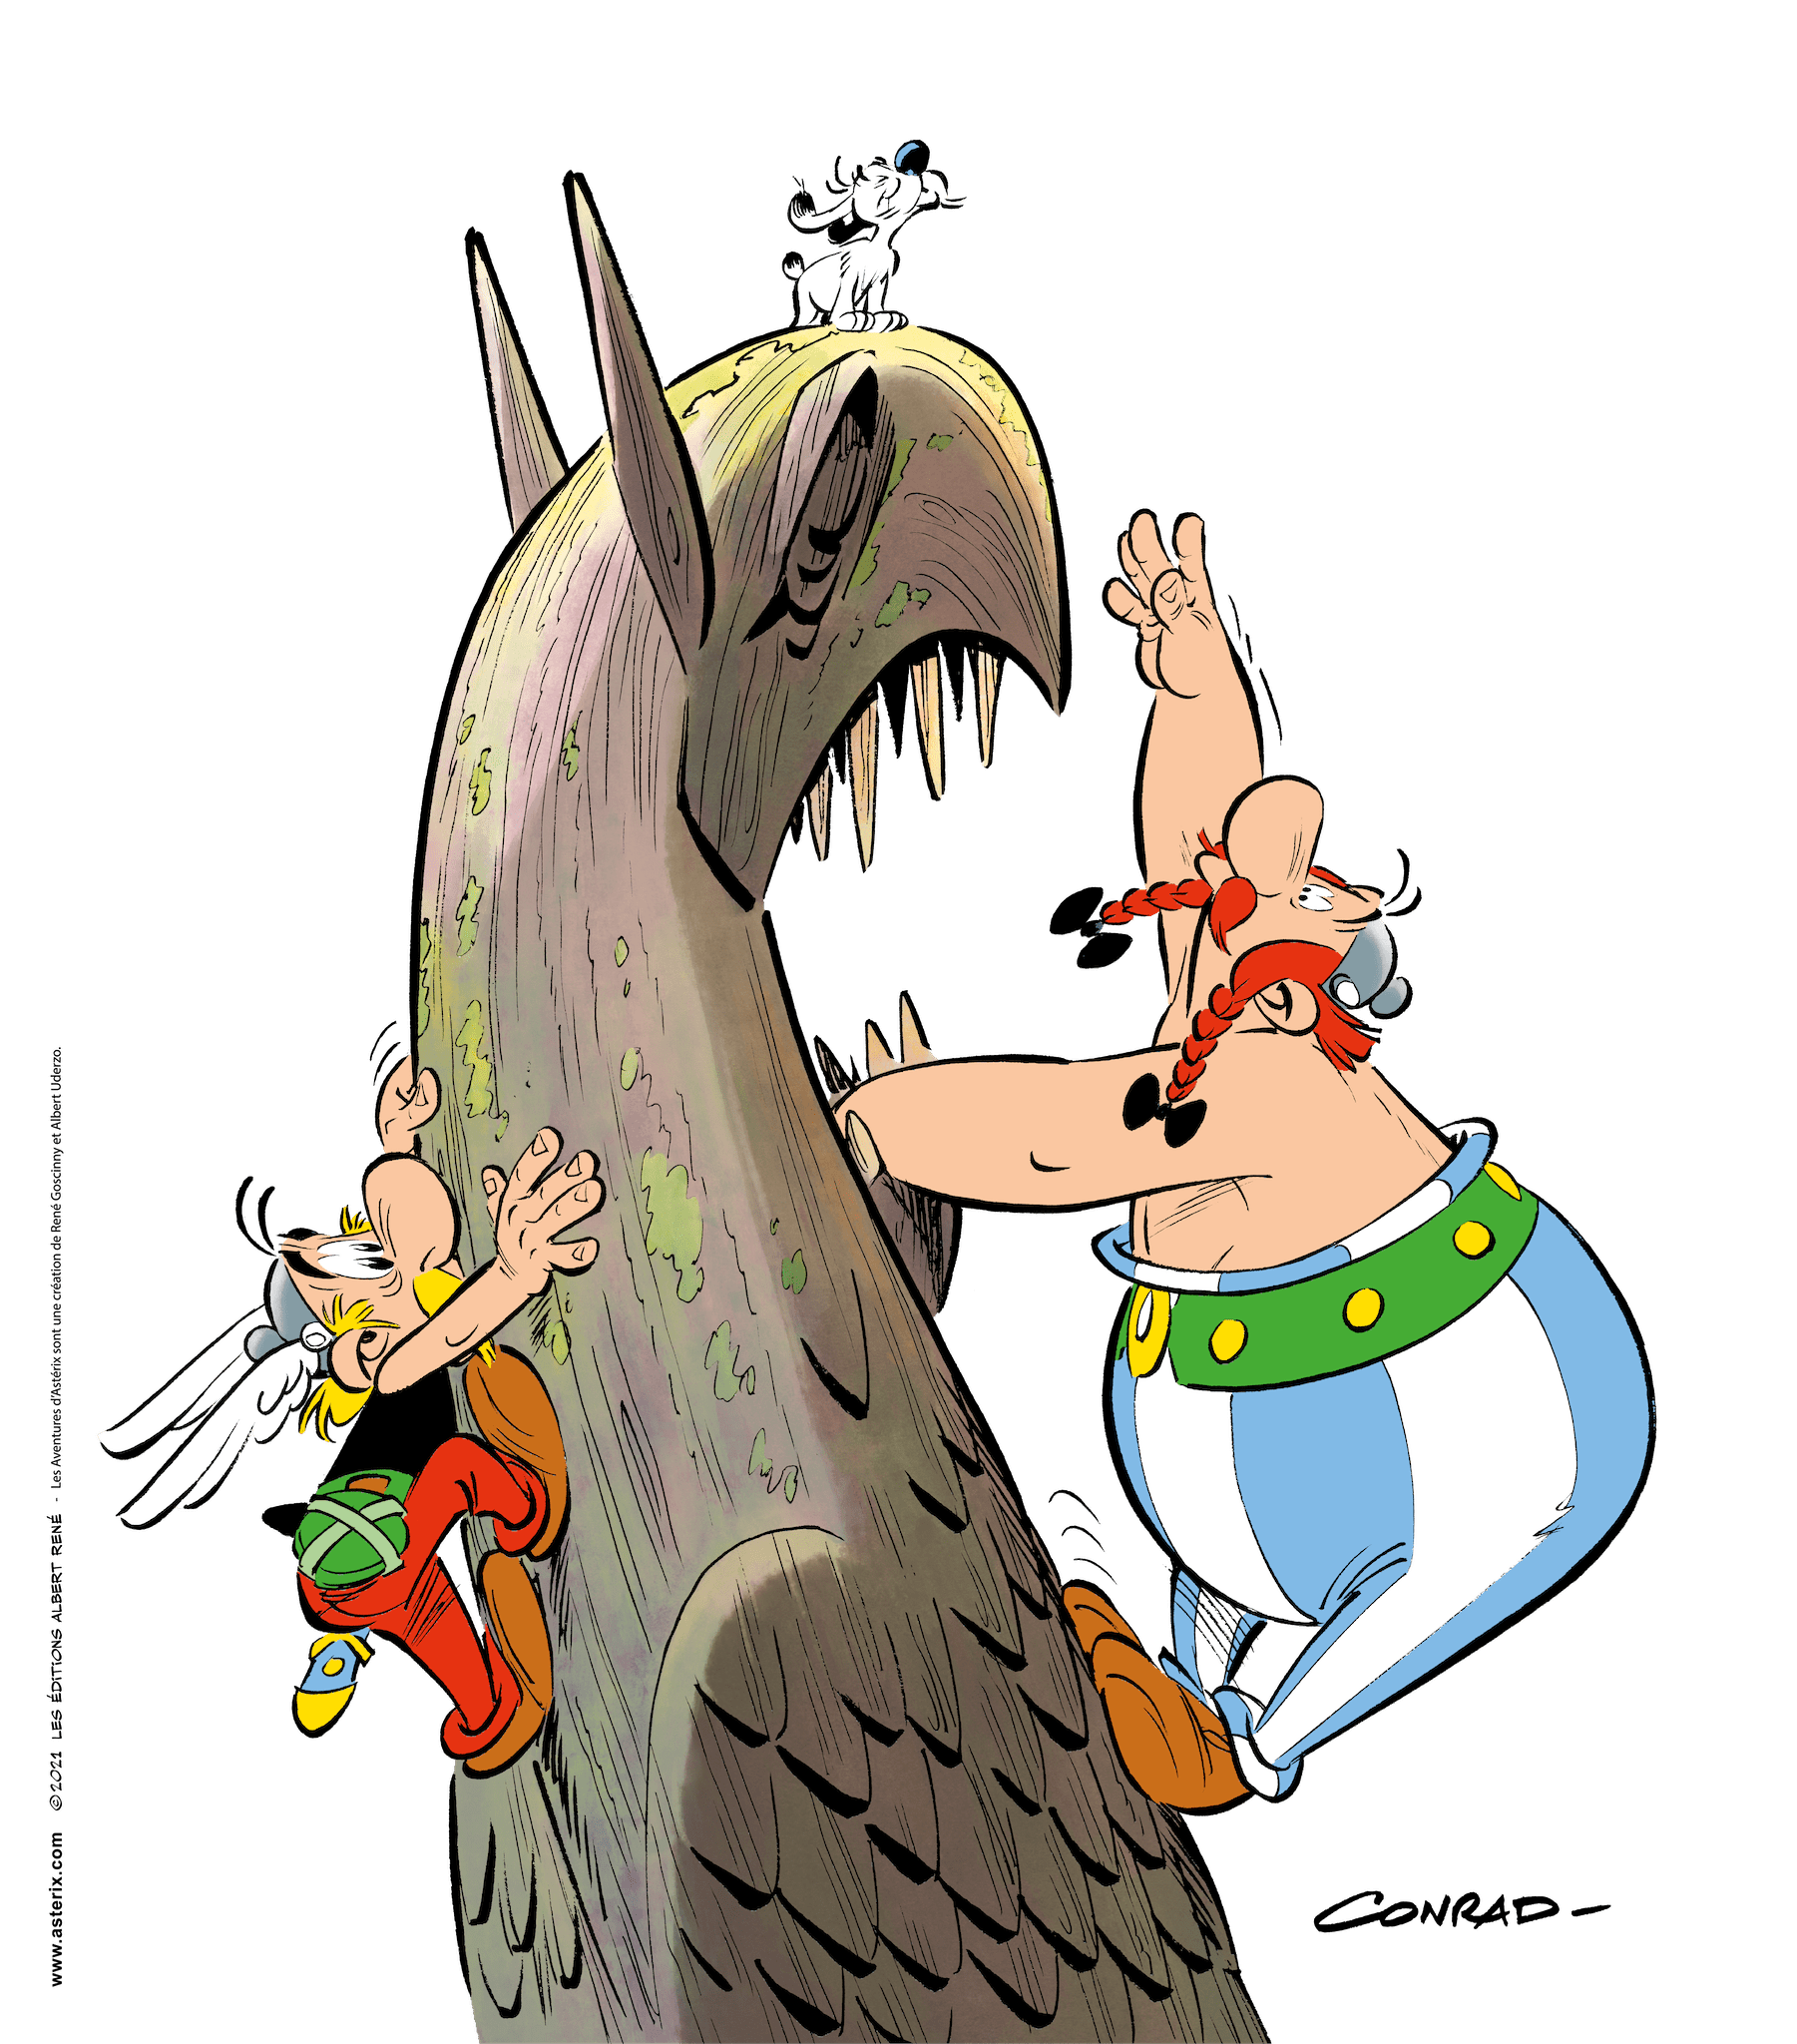 Asterix and the Griffin - Key Visual comic book